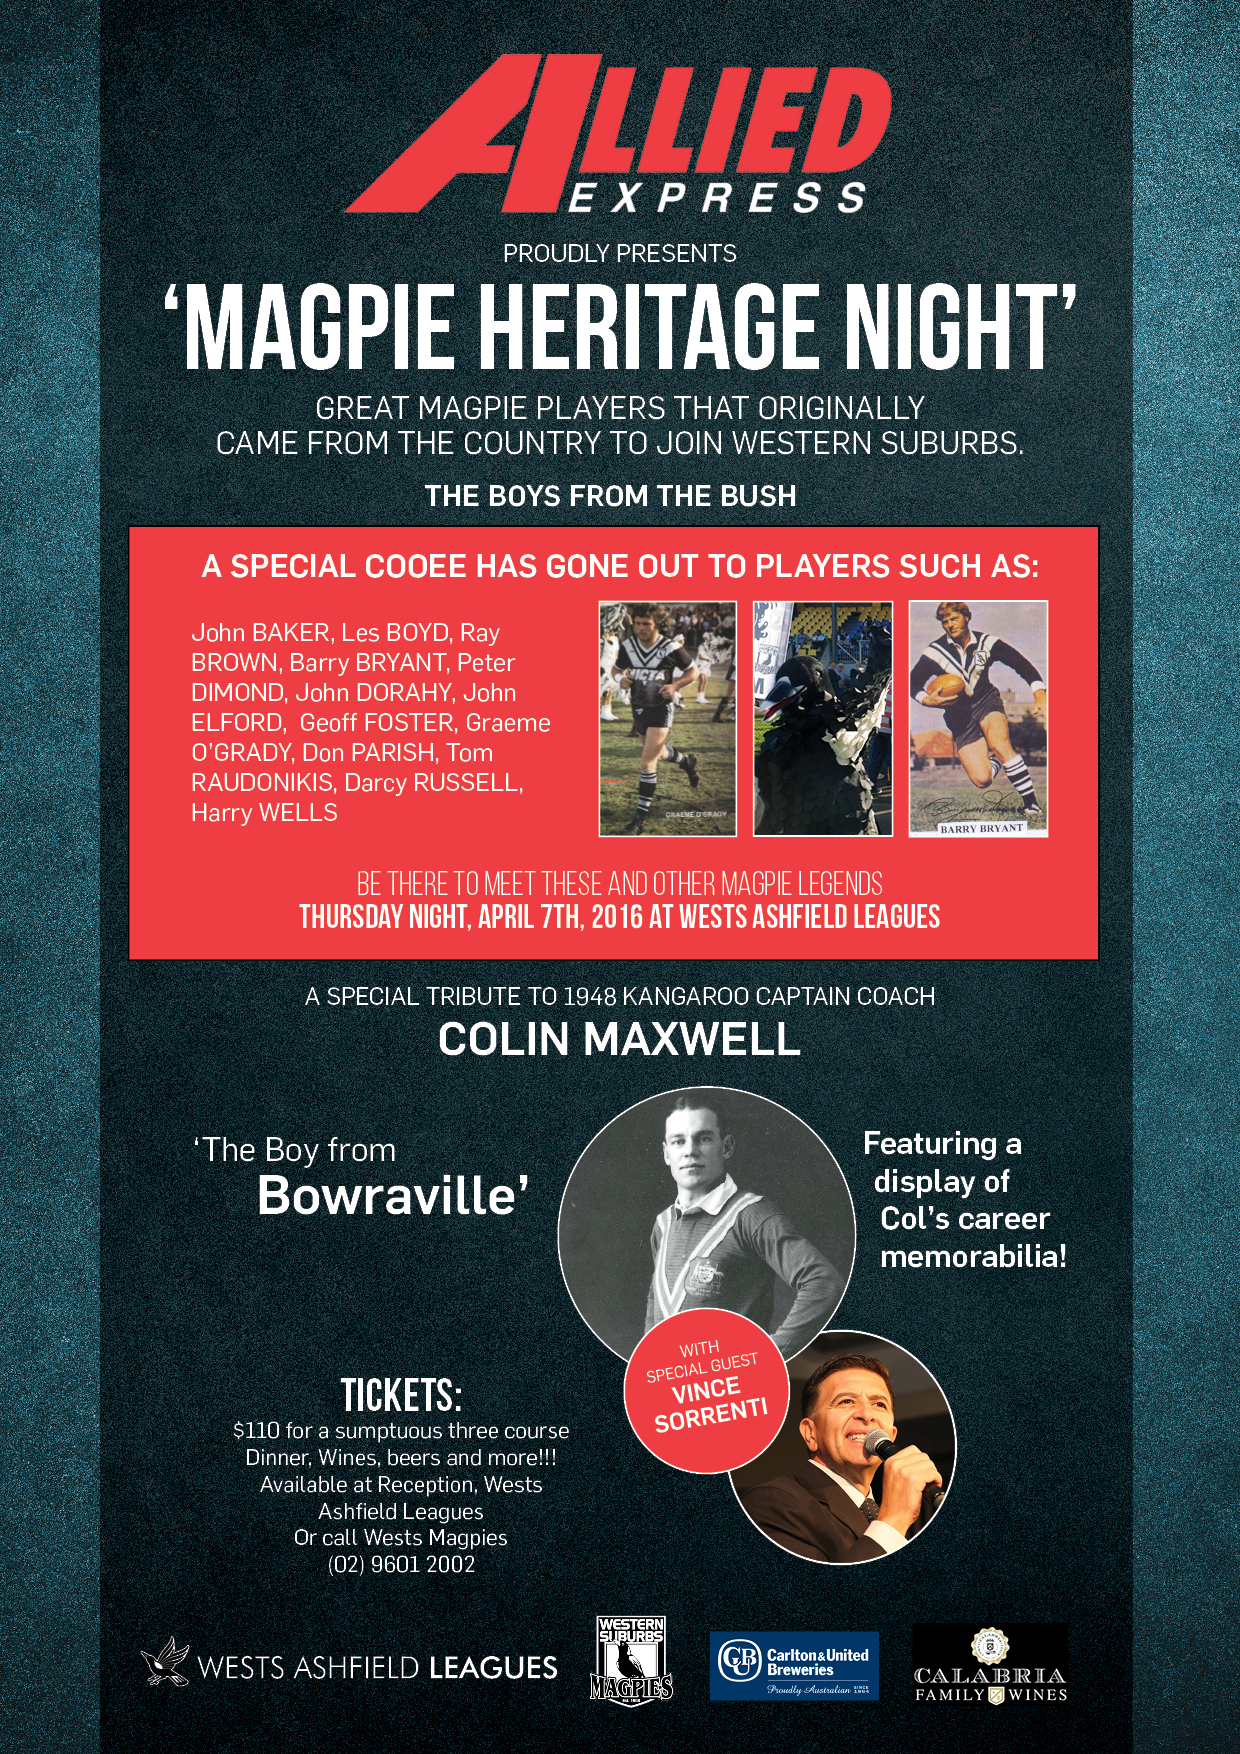 Magpie Heritage Night Flyer 2016 final. Maxwell